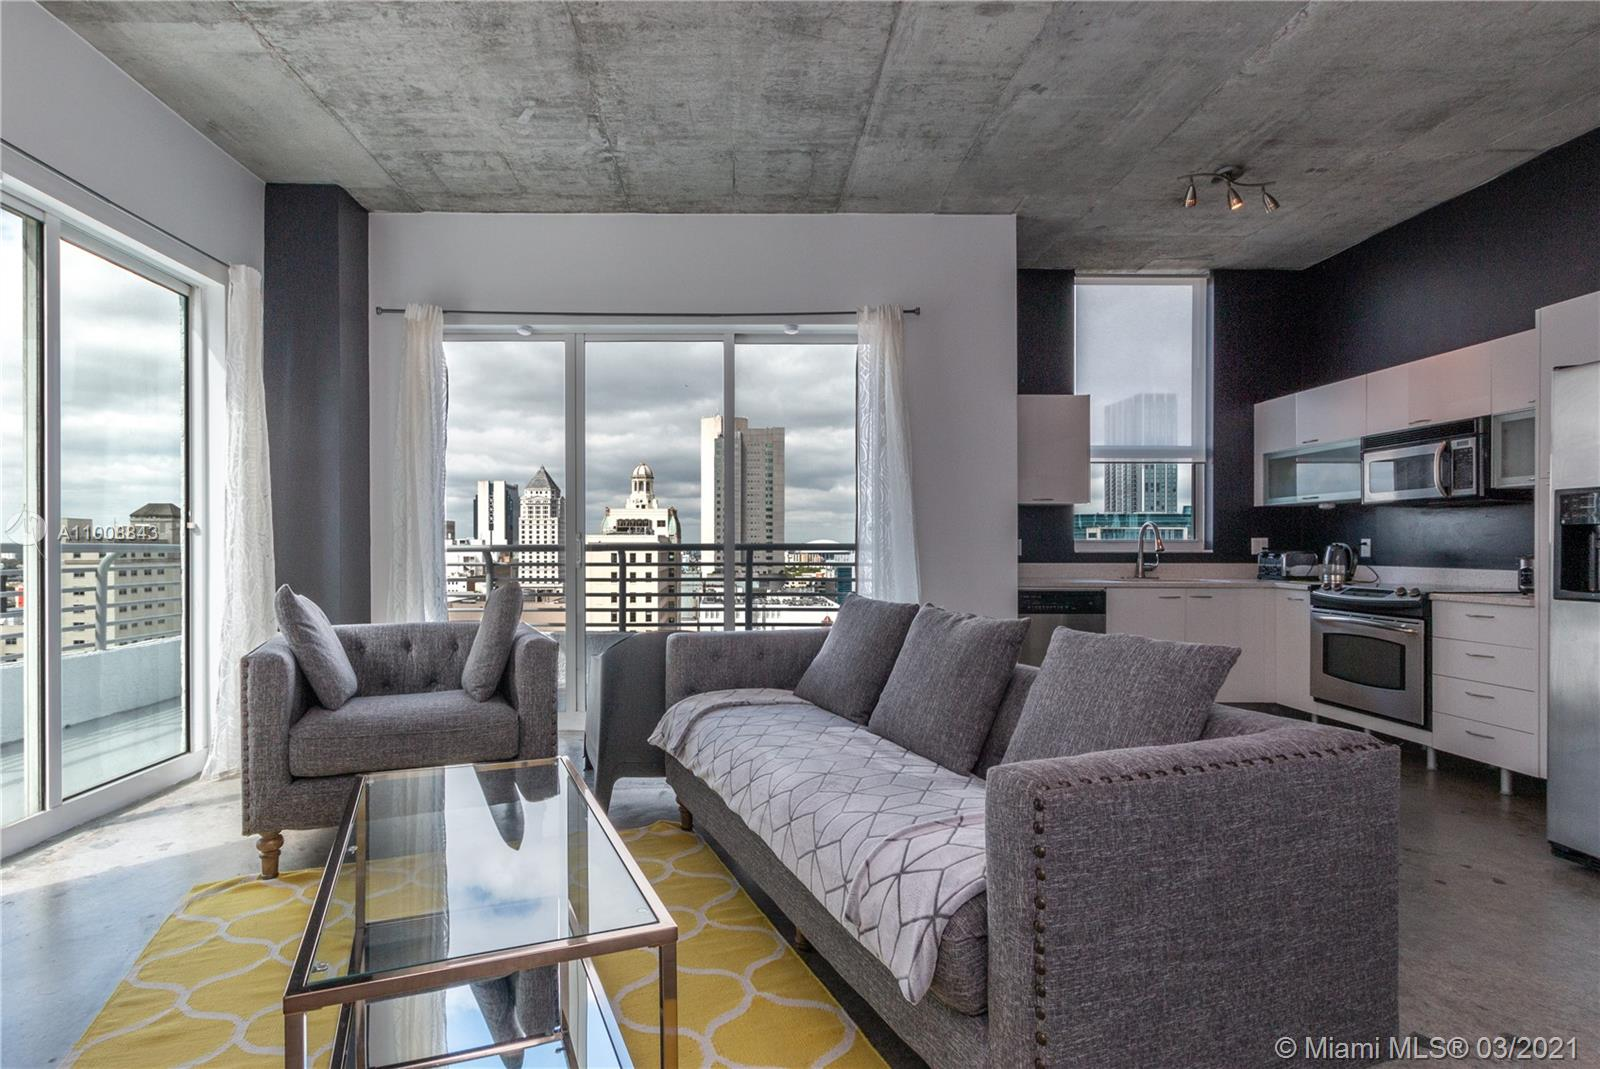 Beautiful and spacious 2/2 loft style corner unit. Bedrooms already enclosed for privacy, 10 FT ceilings, unique oversized terrace, Italian kitchen cabinets, stainless steel appliances, and stunning city views. This is a full service building with rooftop pool, jacuzzi, sauna, fitness center, party room, front desk attendant, pool on the ground floor and security 24/7. Walking distance to Brickell, AA Arena, Bayfront Park, restaurants . . . etc.